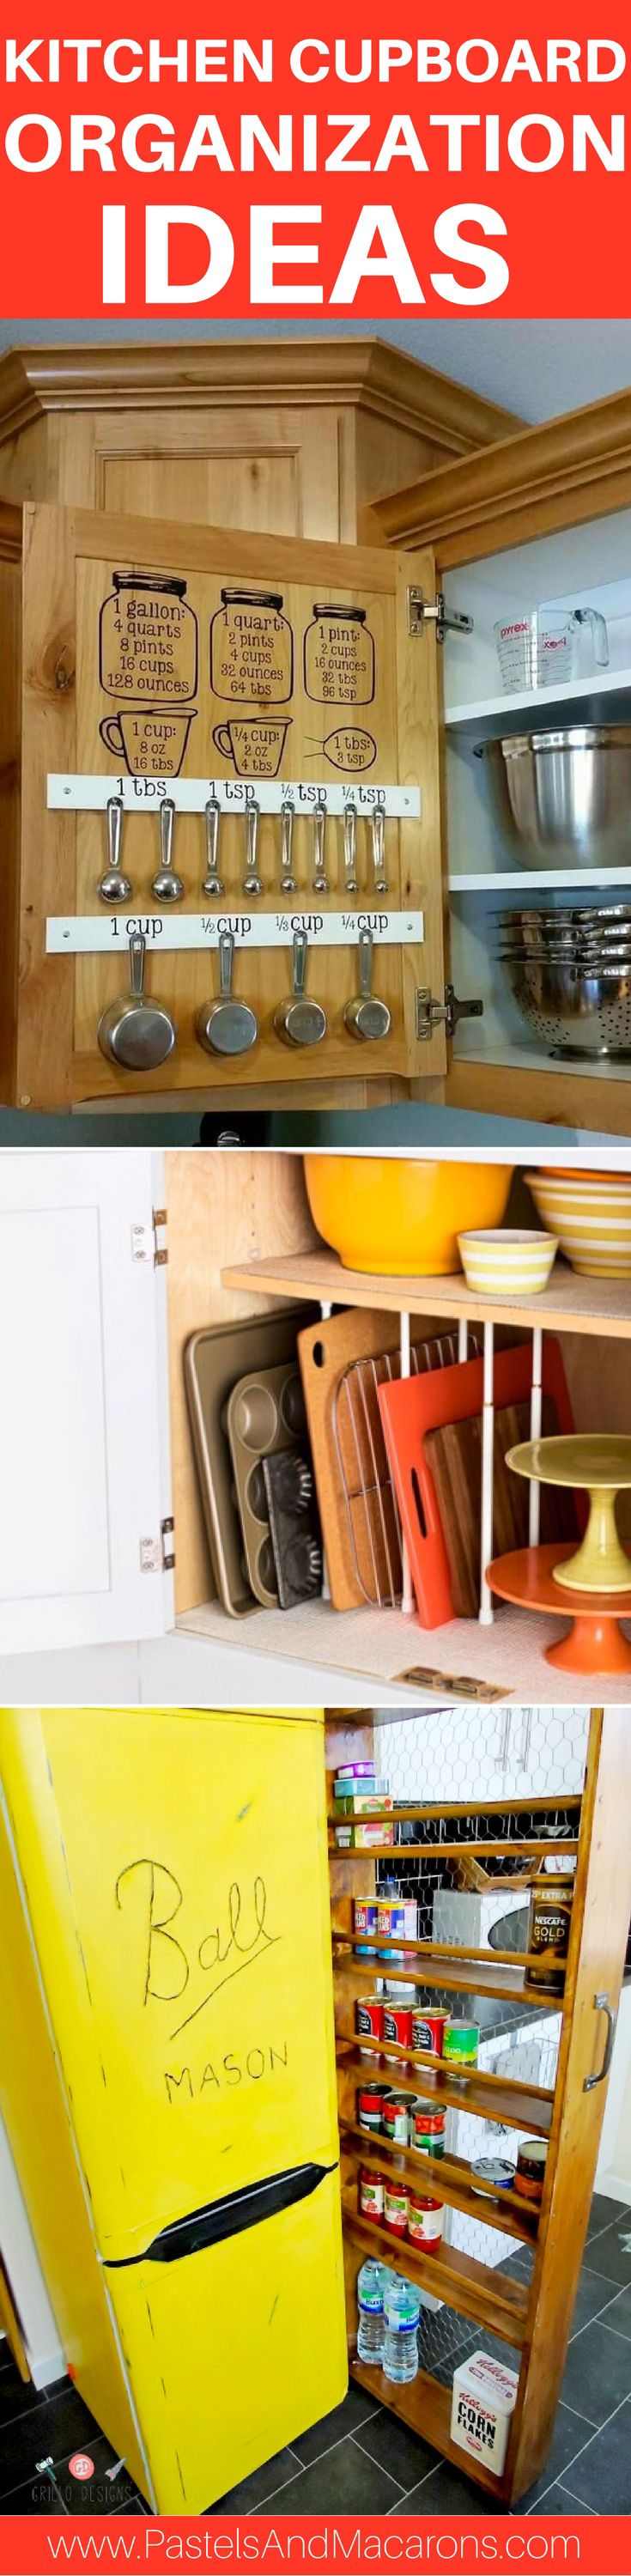 Kitchen Cupboard Organization 17 Best Ideas About Organize Kitchen Cupboards On Pinterest